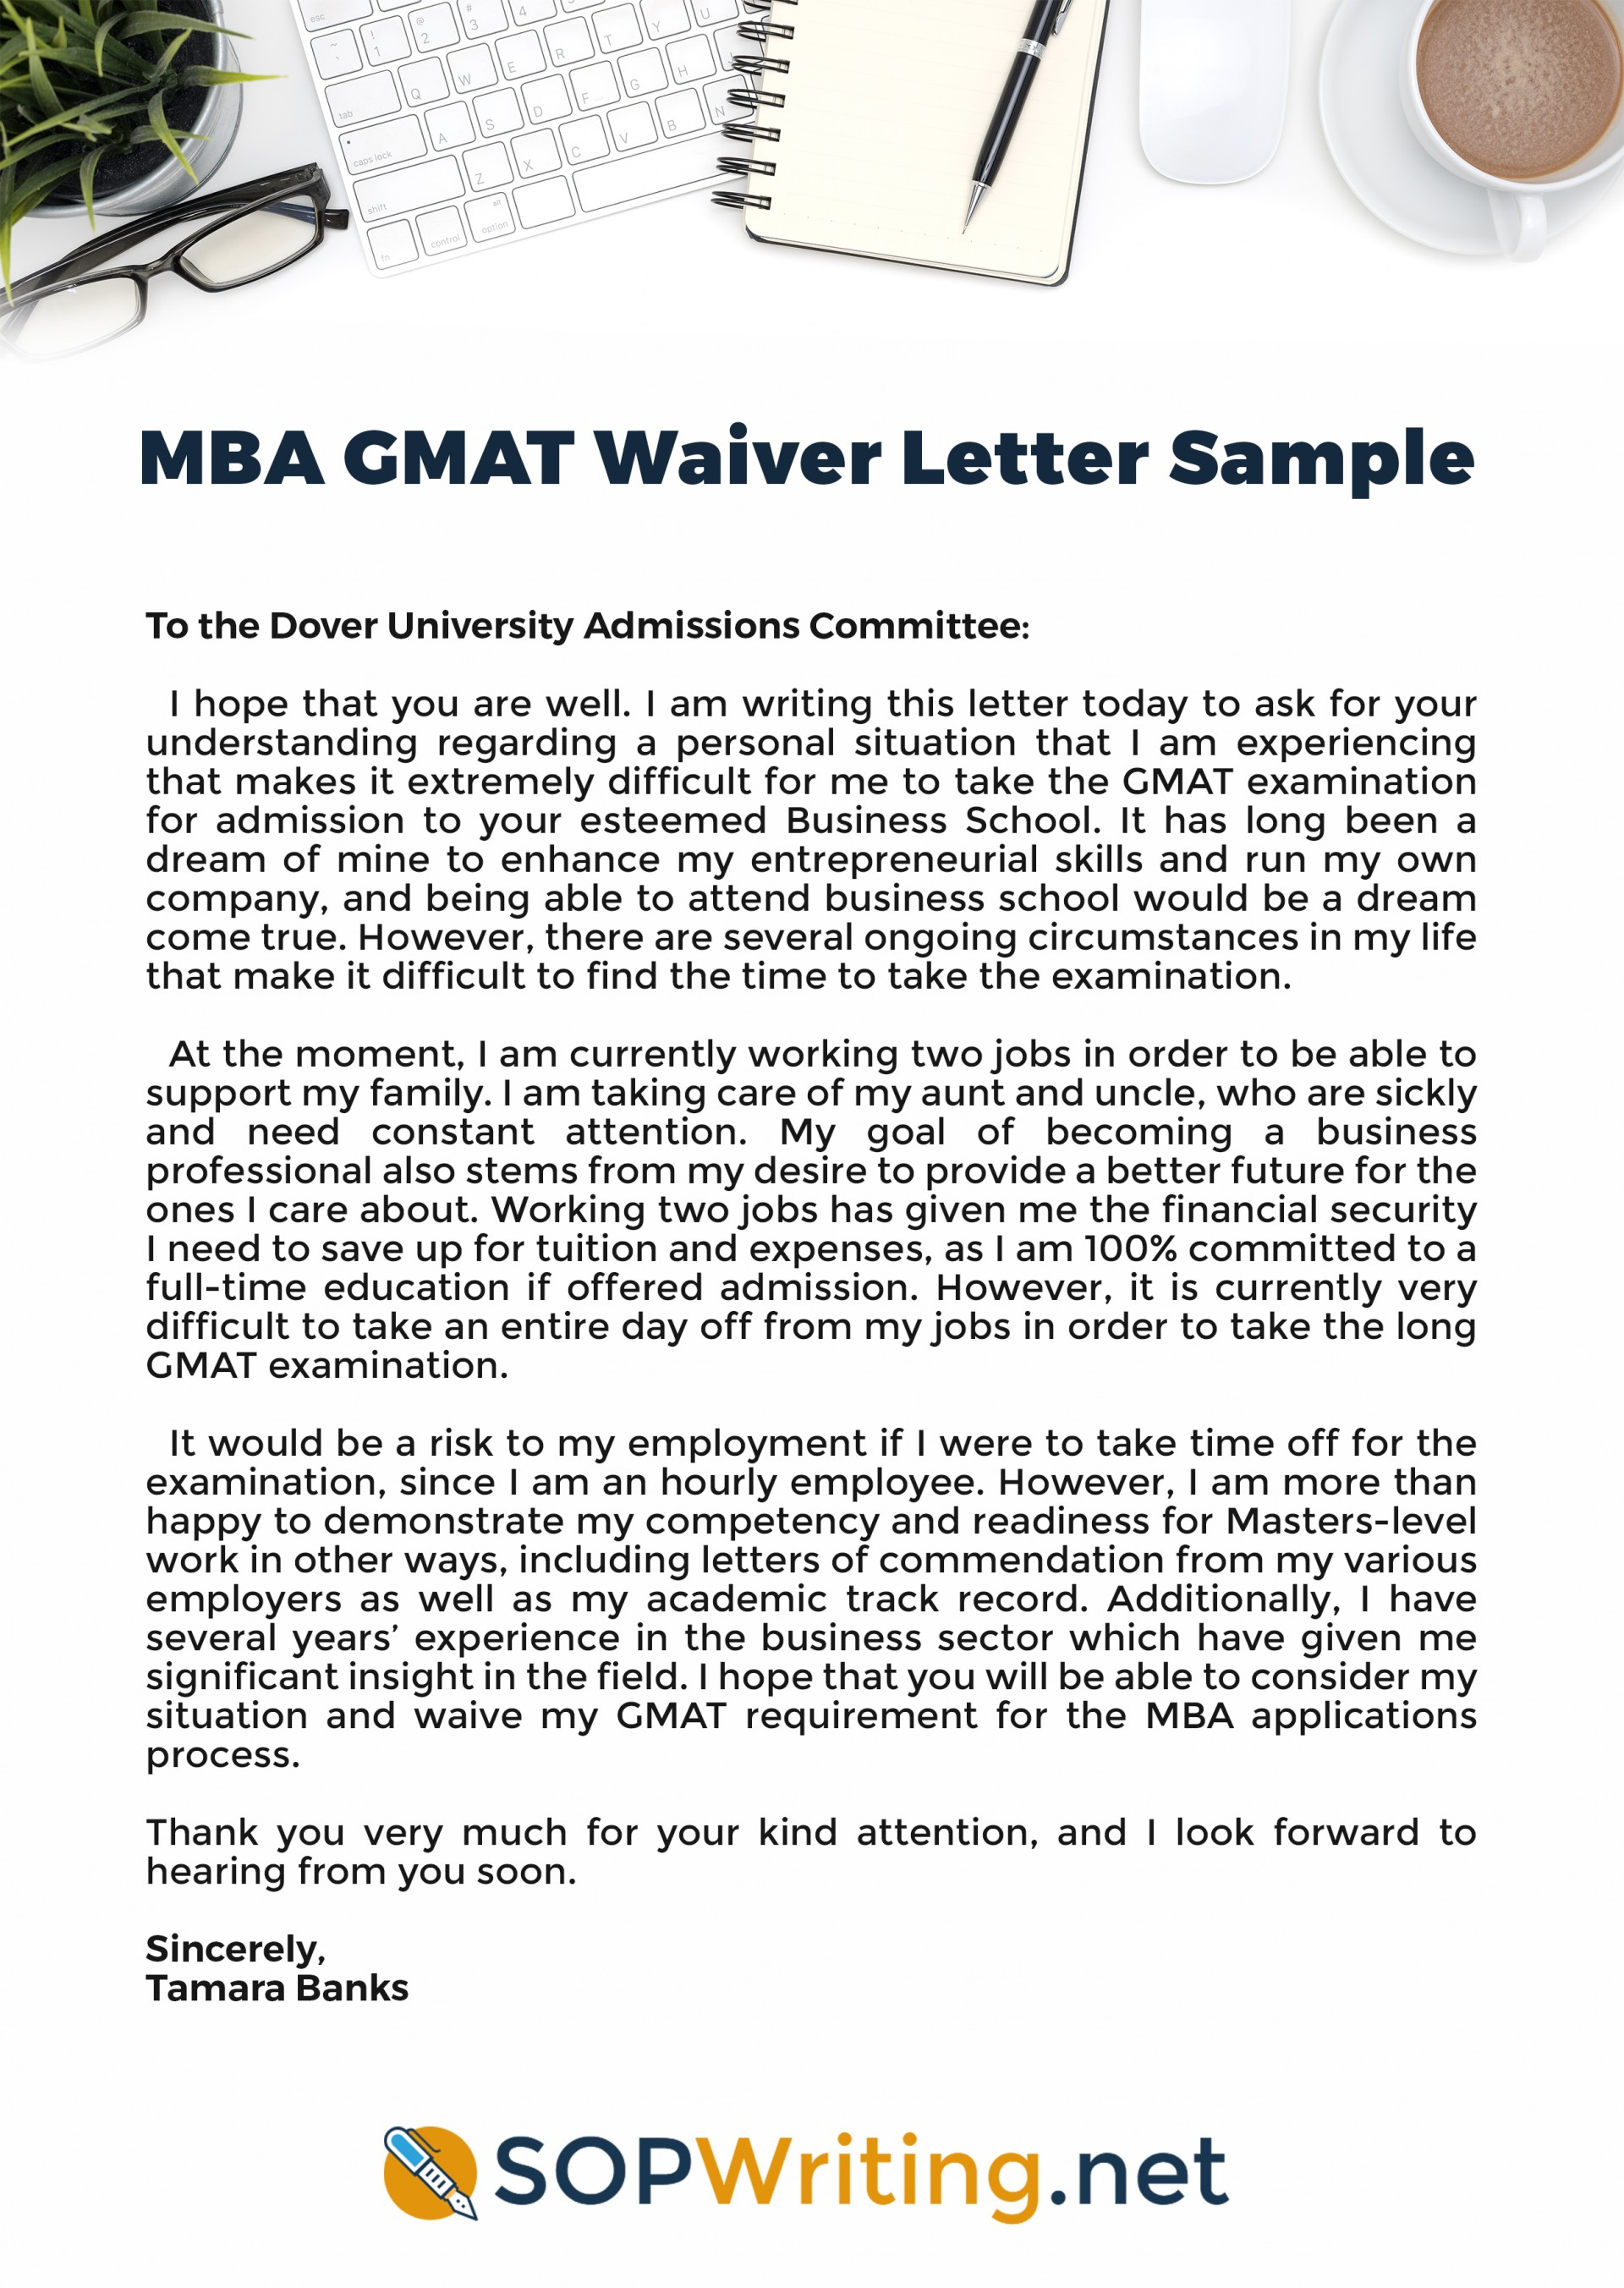 029 Mba Gmat Waiver Letter Sample Essay Shocking Topics Awa Essays Free Download 1920